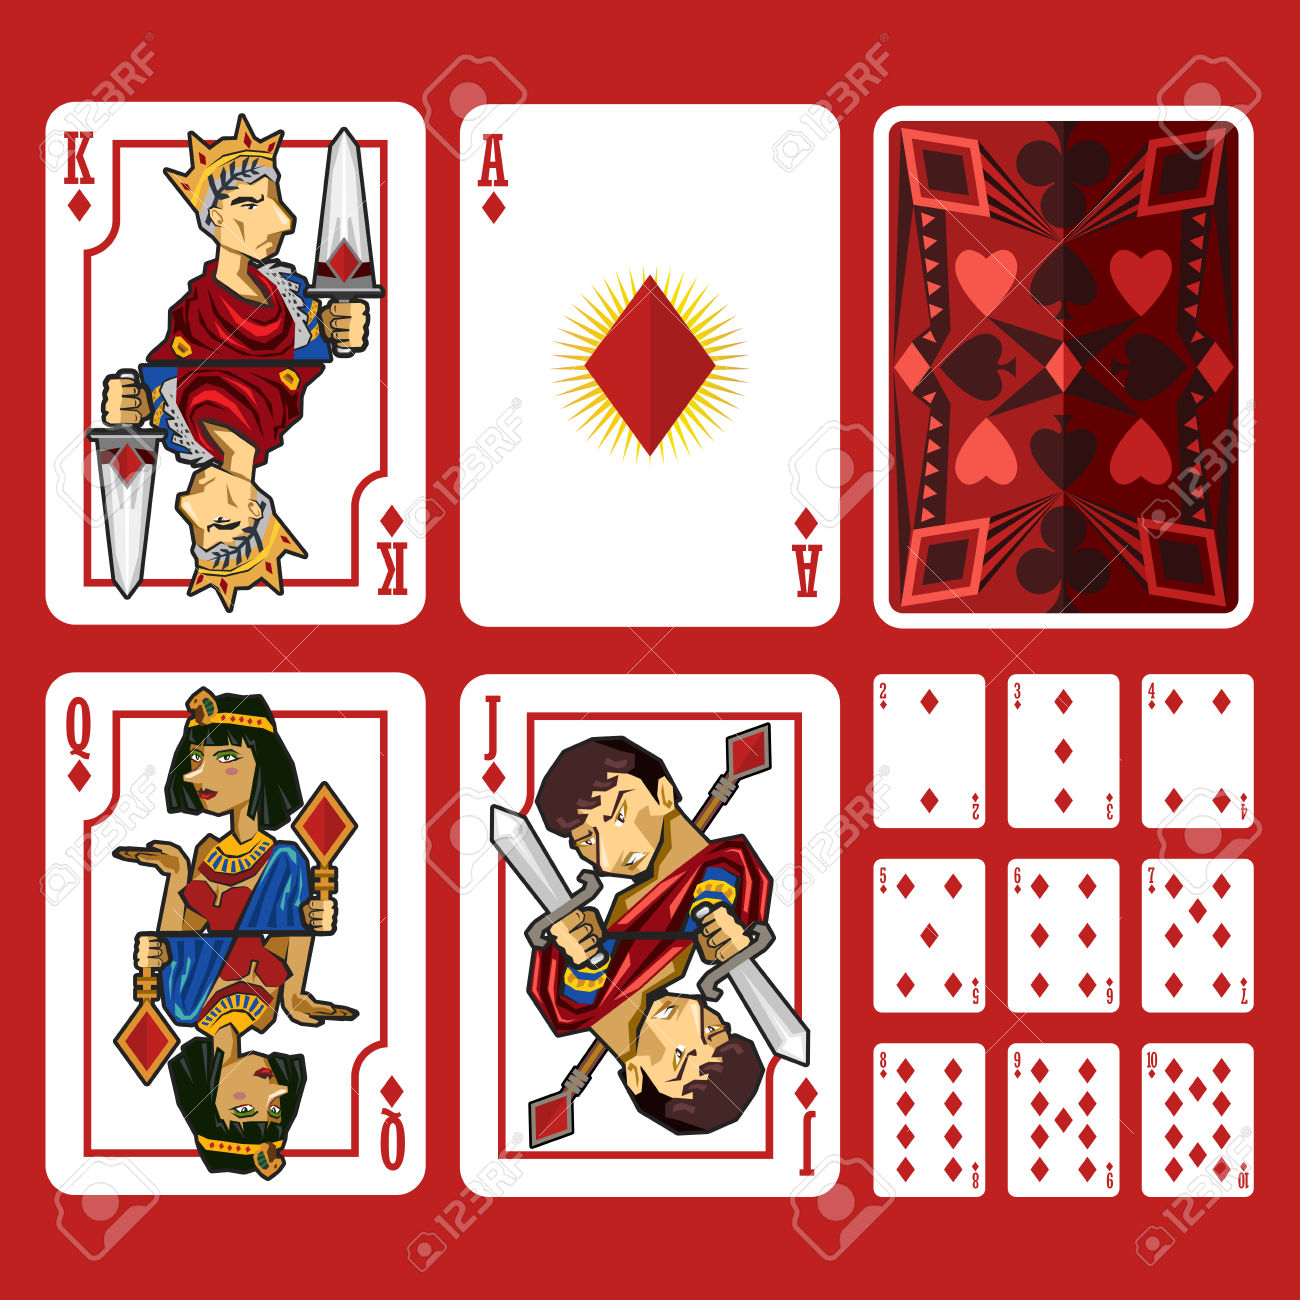 Game of hearts clipart clip freeuse library 20,549 Game Of Hearts Cliparts, Stock Vector And Royalty Free Game ... clip freeuse library